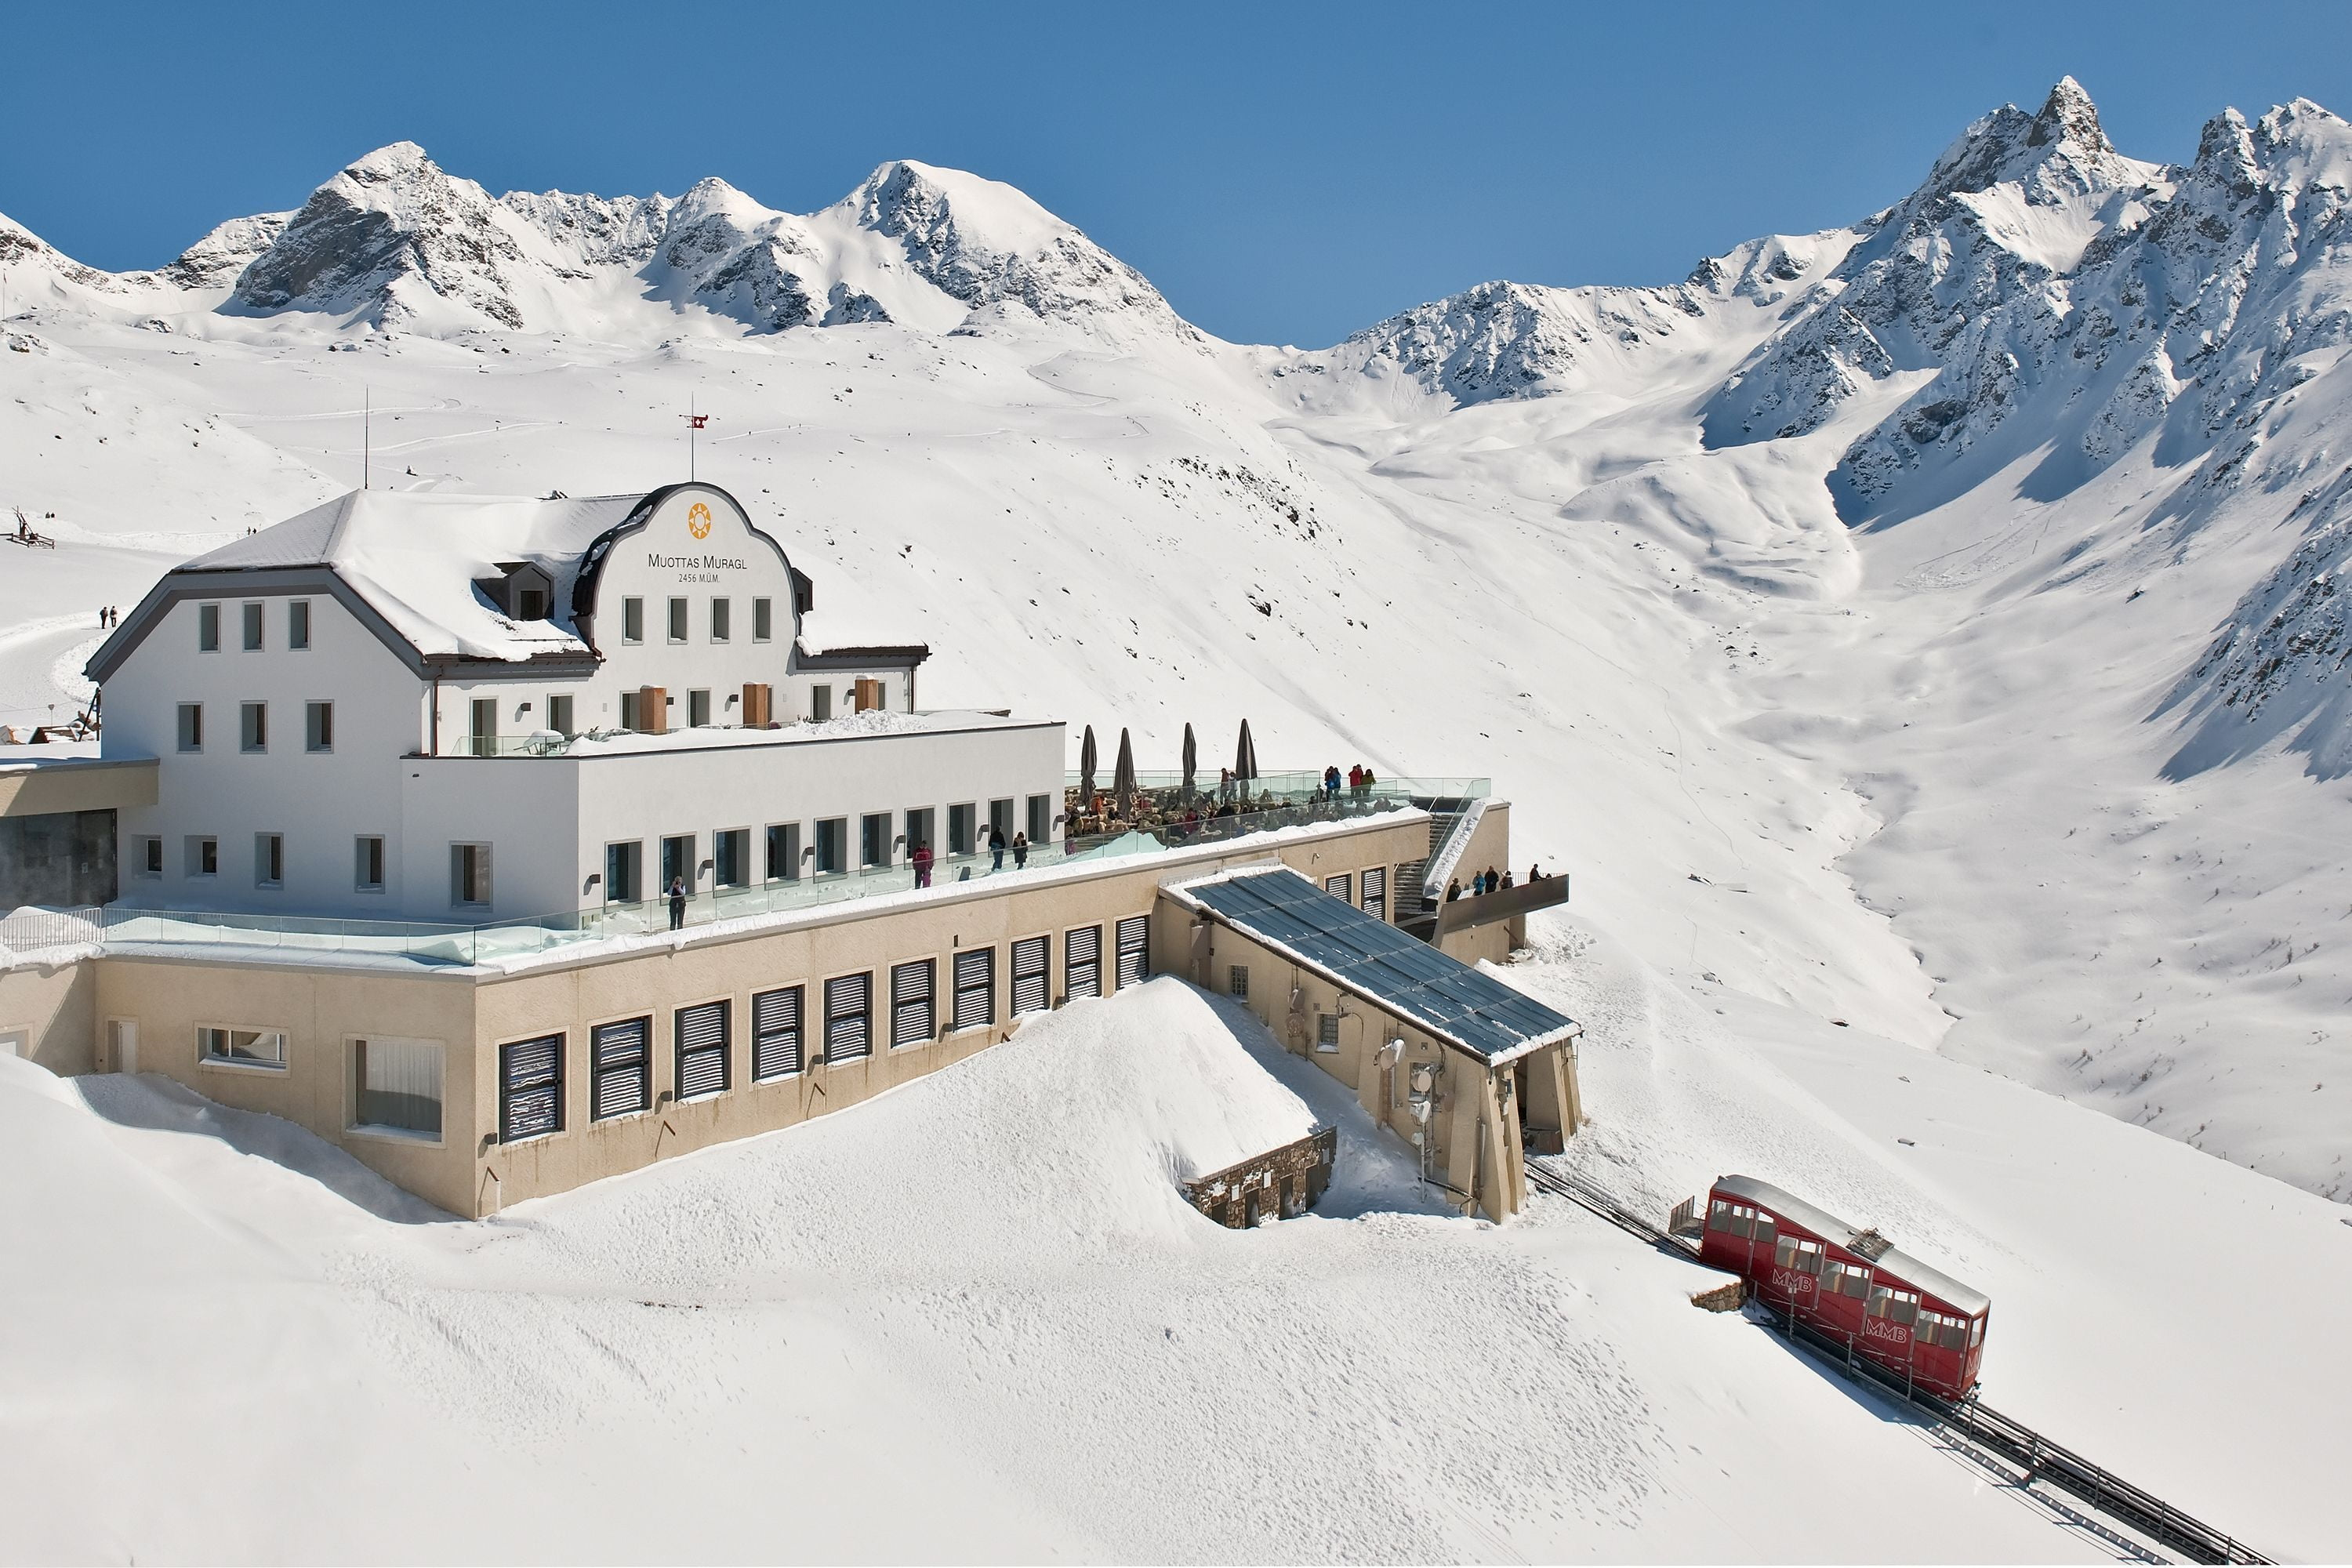 A big plus for the Engadin